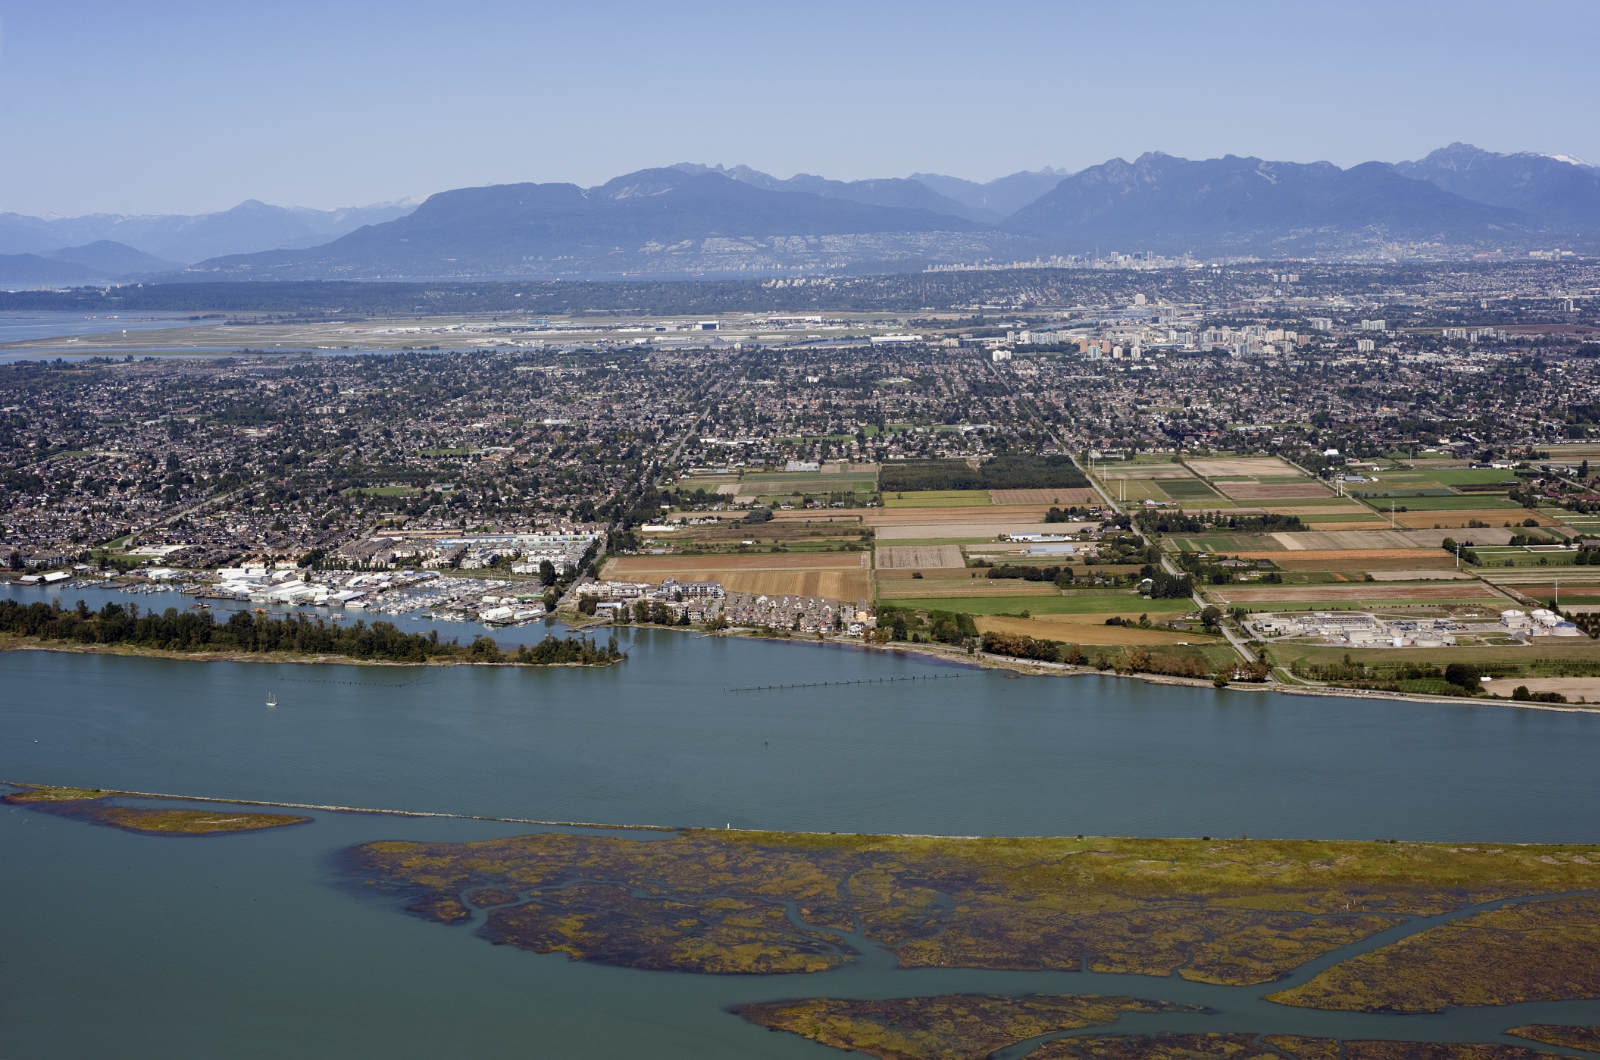 An aerial view of the Richmond Area, showing the river and the mountains in the distance